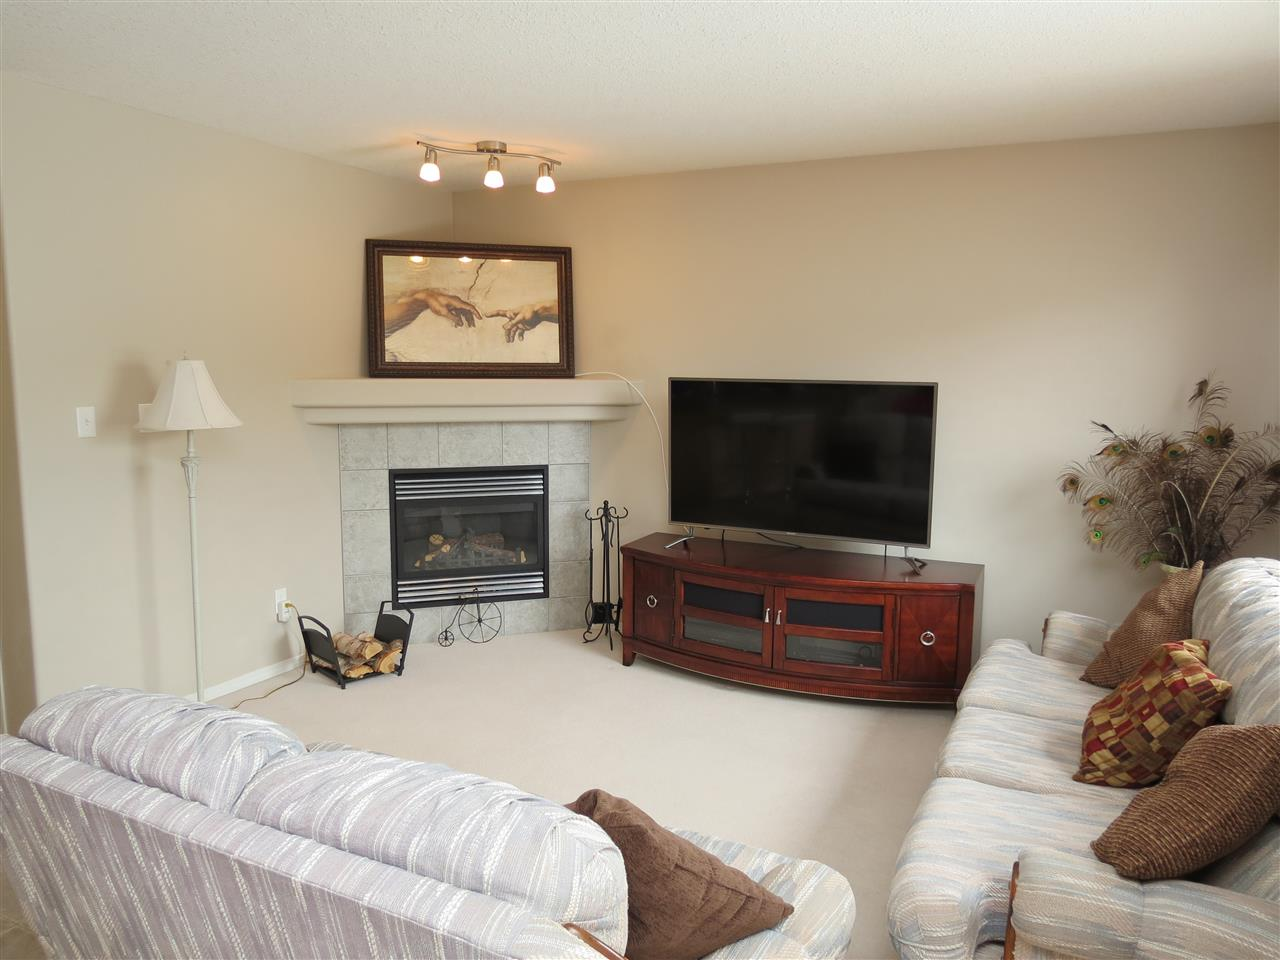 Photo 15: 9429 80 Avenue: Morinville House Half Duplex for sale : MLS(r) # E4059755